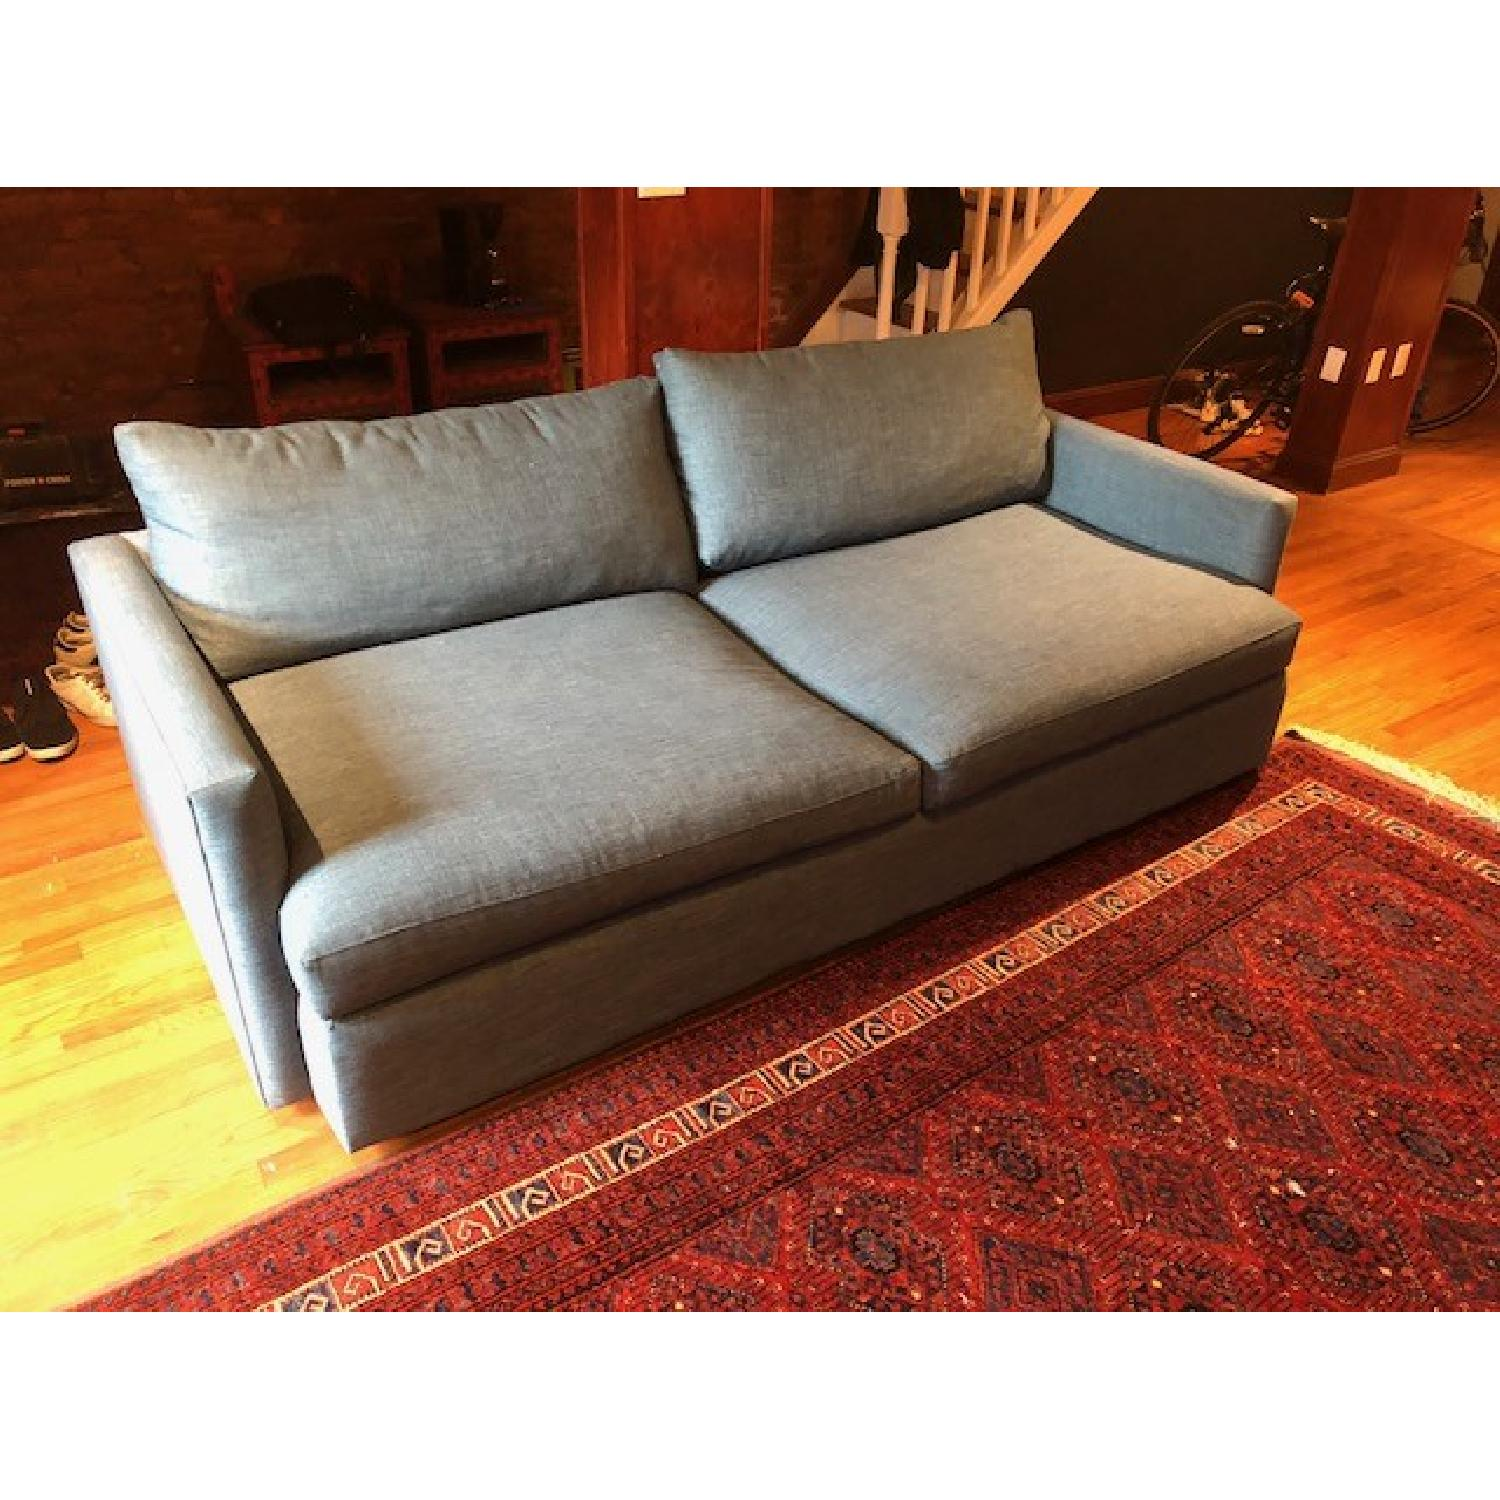 Crate & Barrel Lounge II Apartment Sofa & Ottoman-2